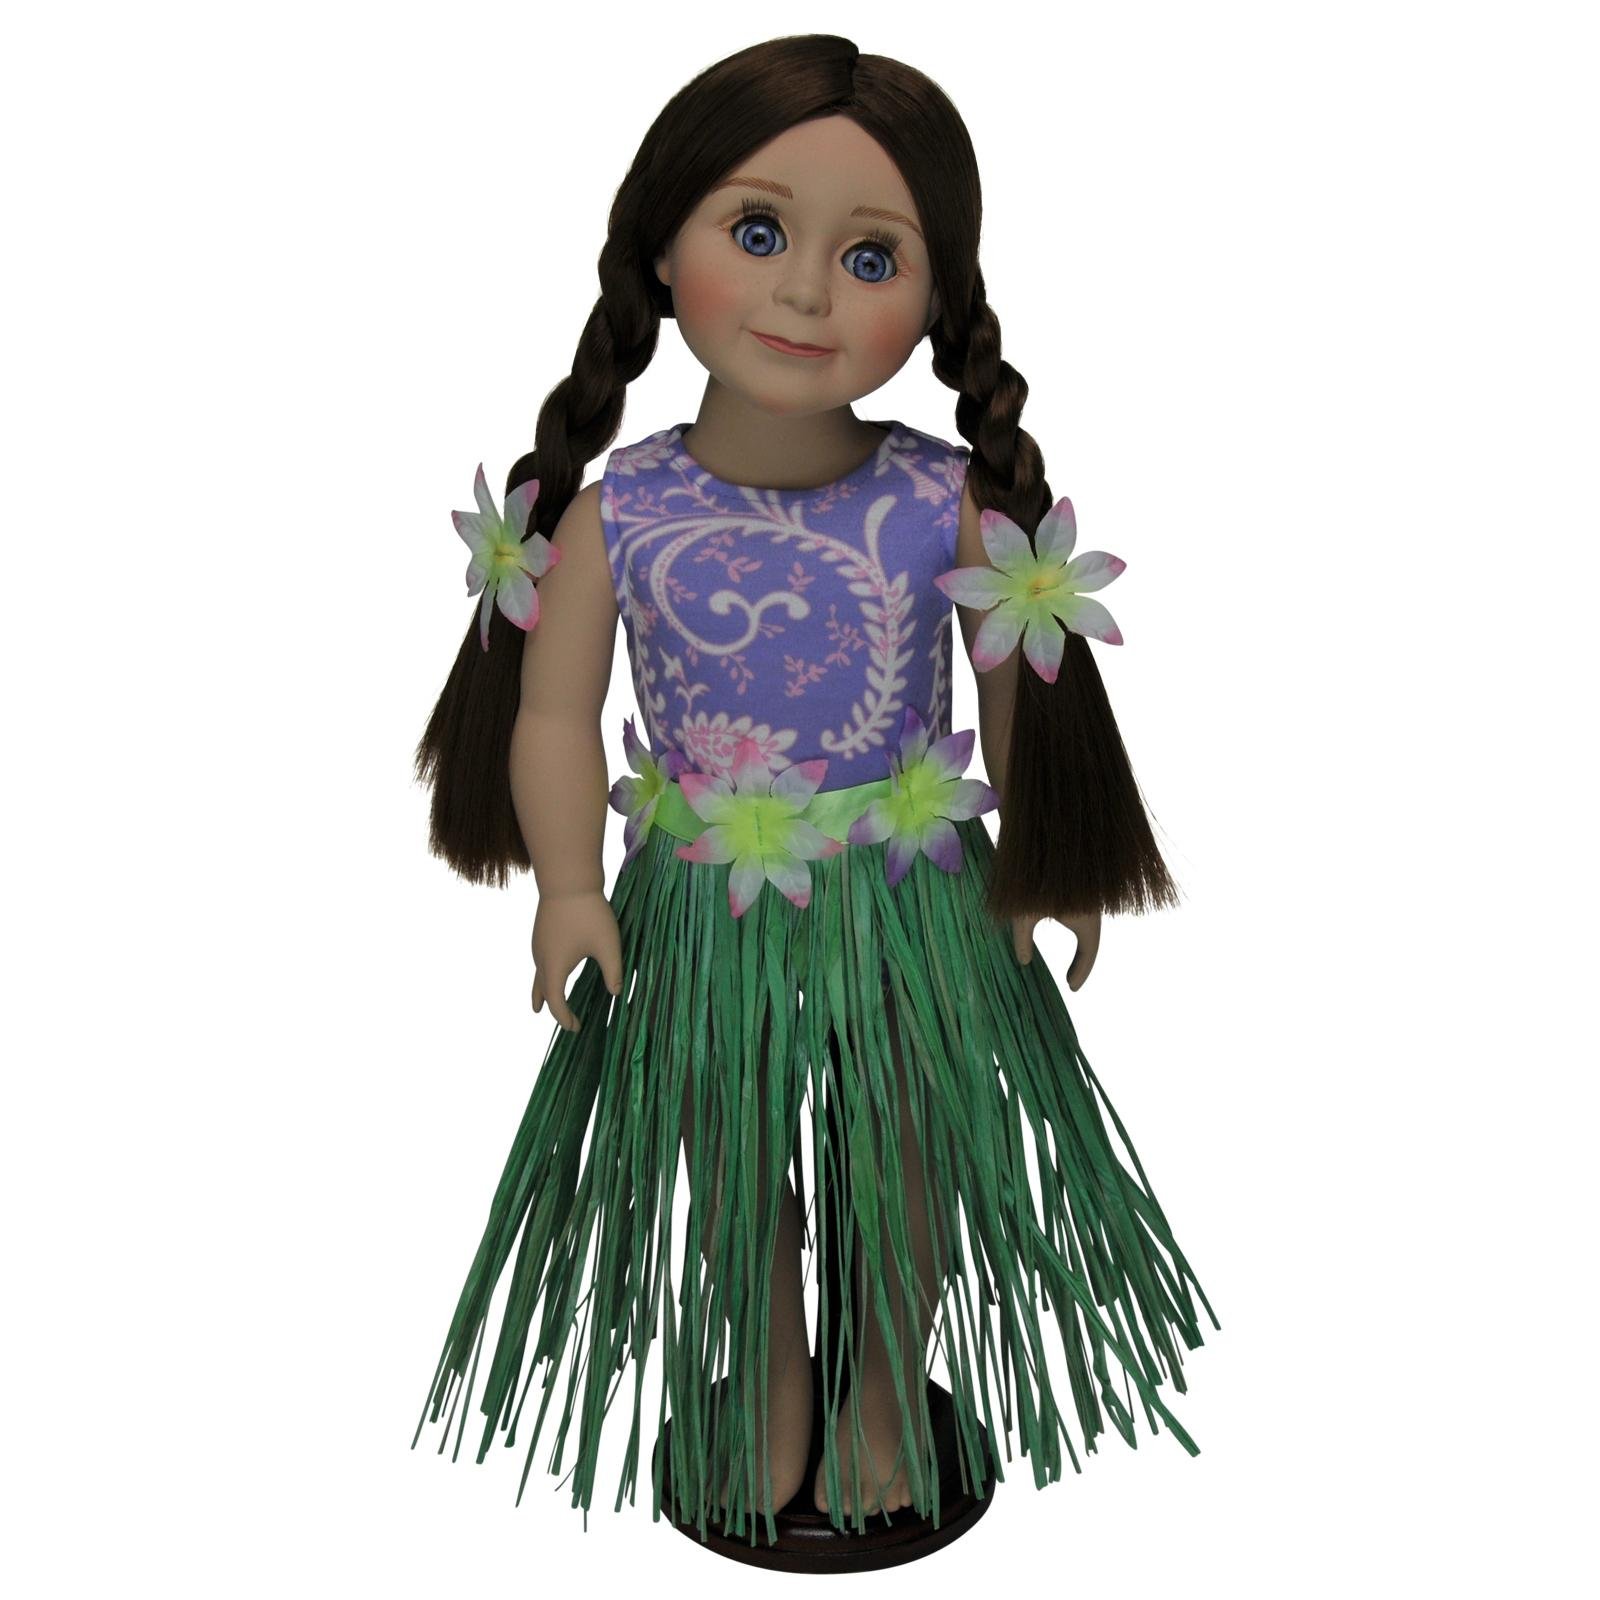 Queen's Treasures 18 in. Doll Hula Girl Swim Suit with Ac...